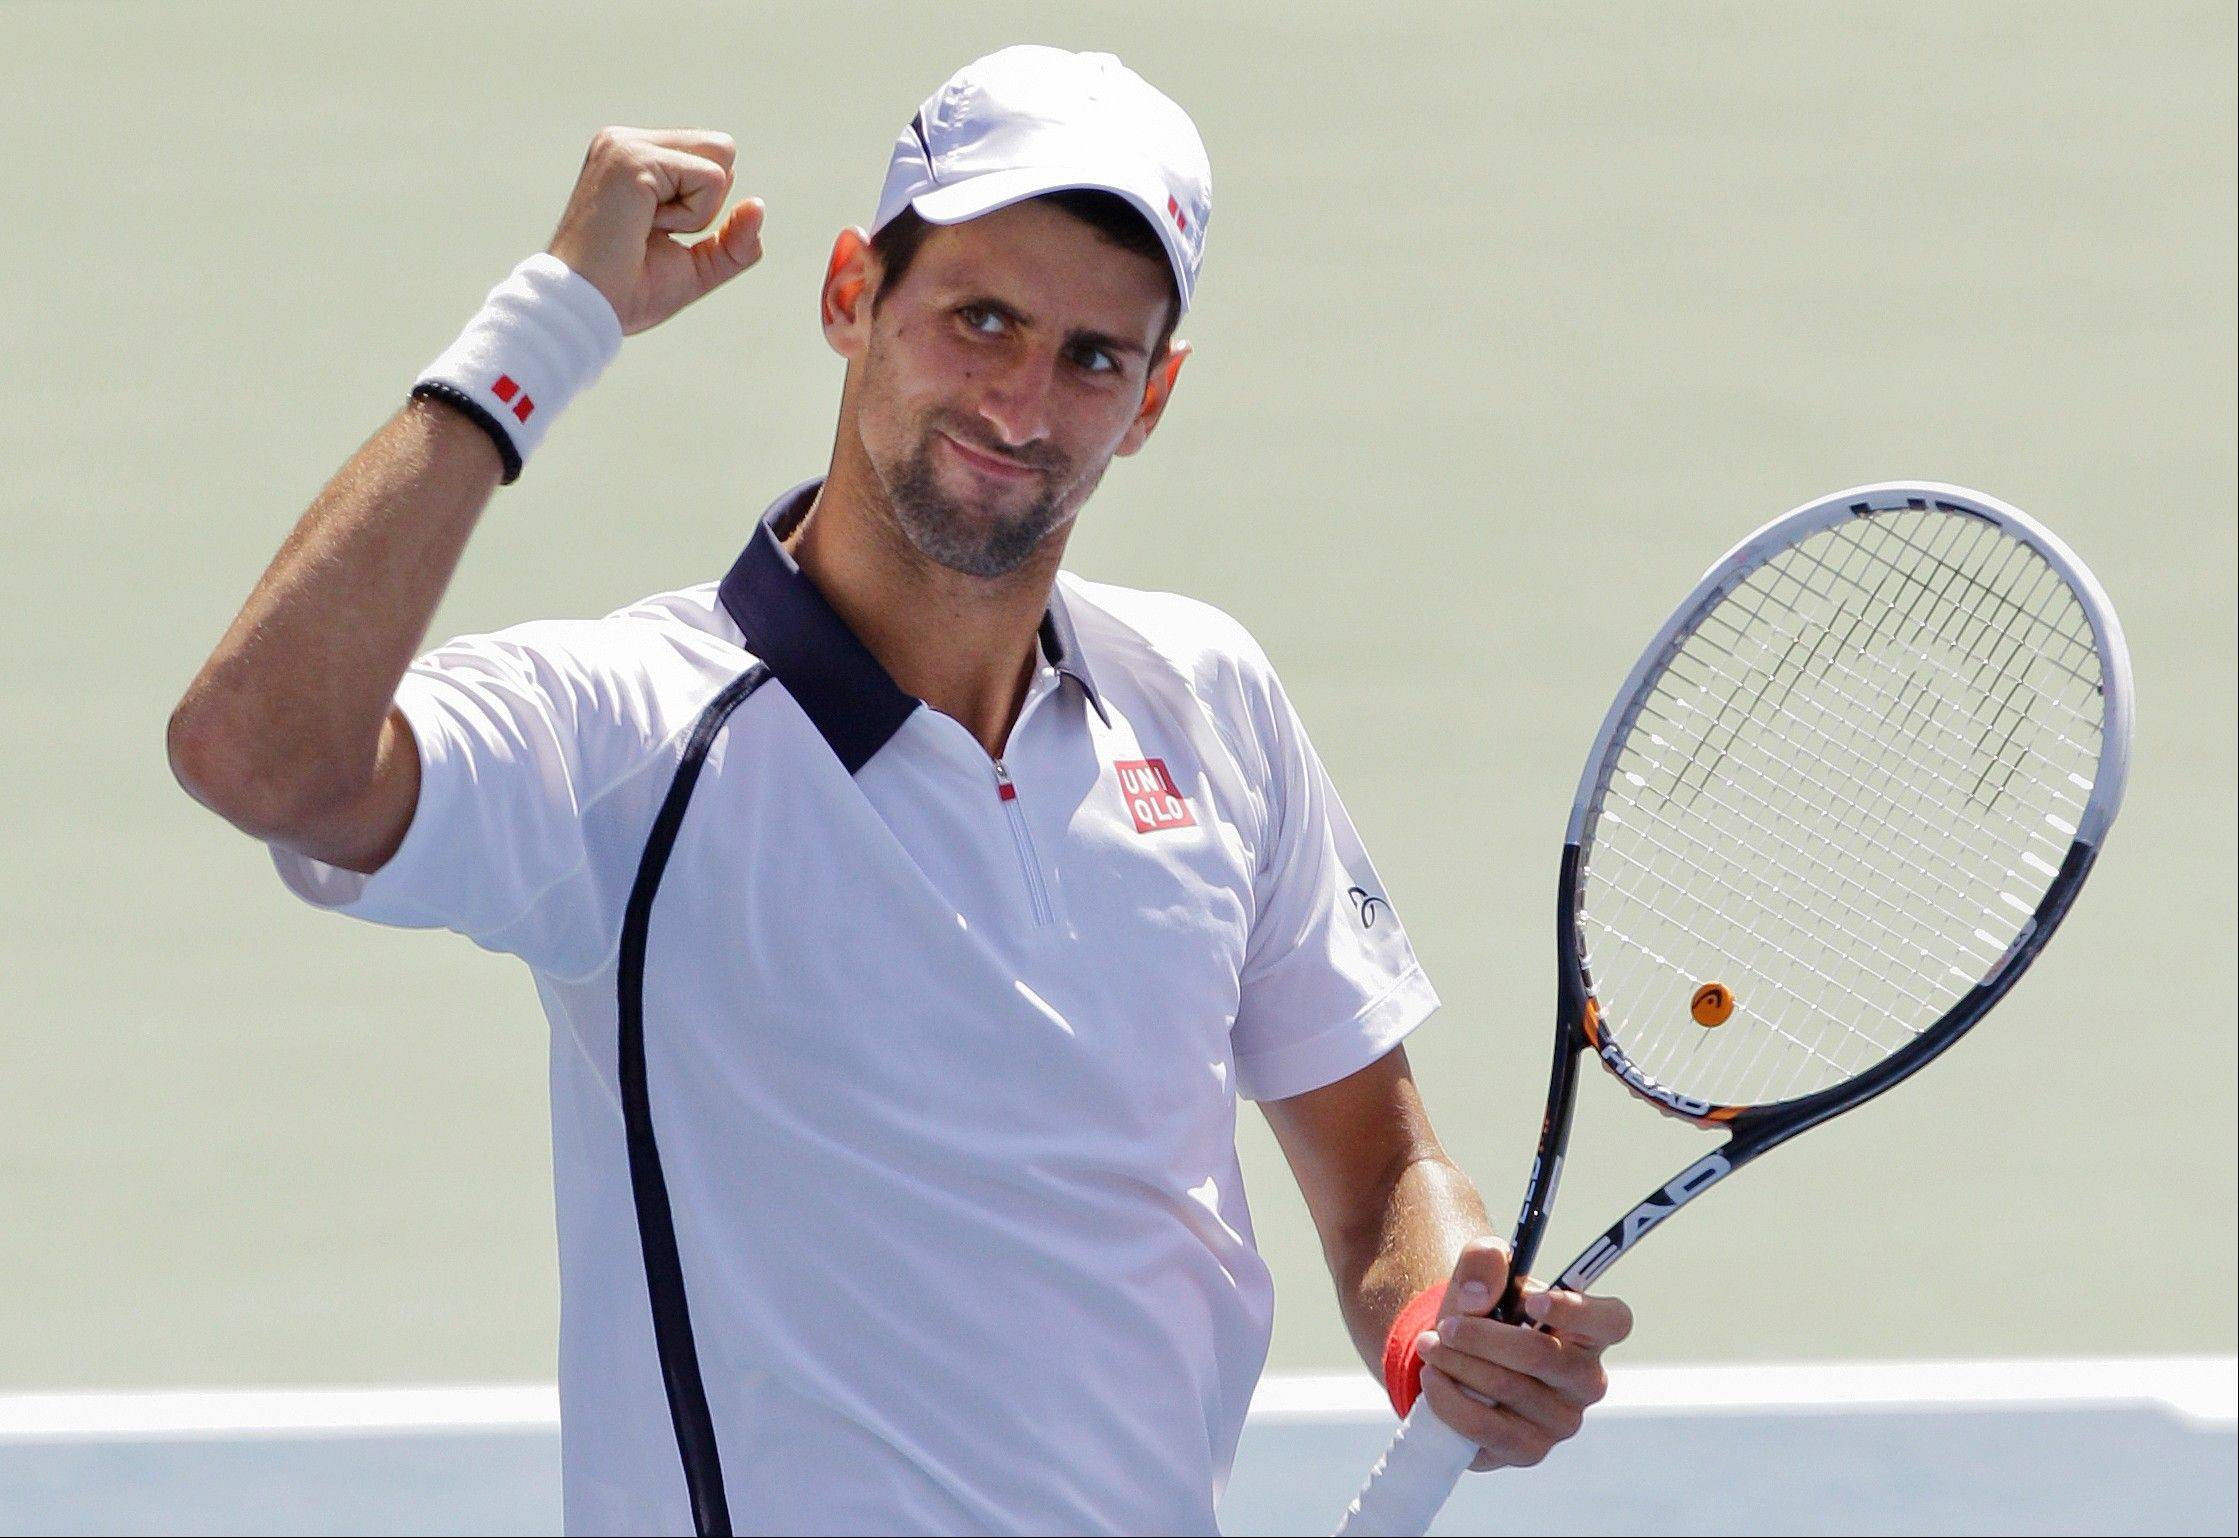 Serbia's Novak Djokovic reacts Sunday after beating Spain's David Ferrer in a semifinal match at the 2012 US Open tennis tournament in New York.